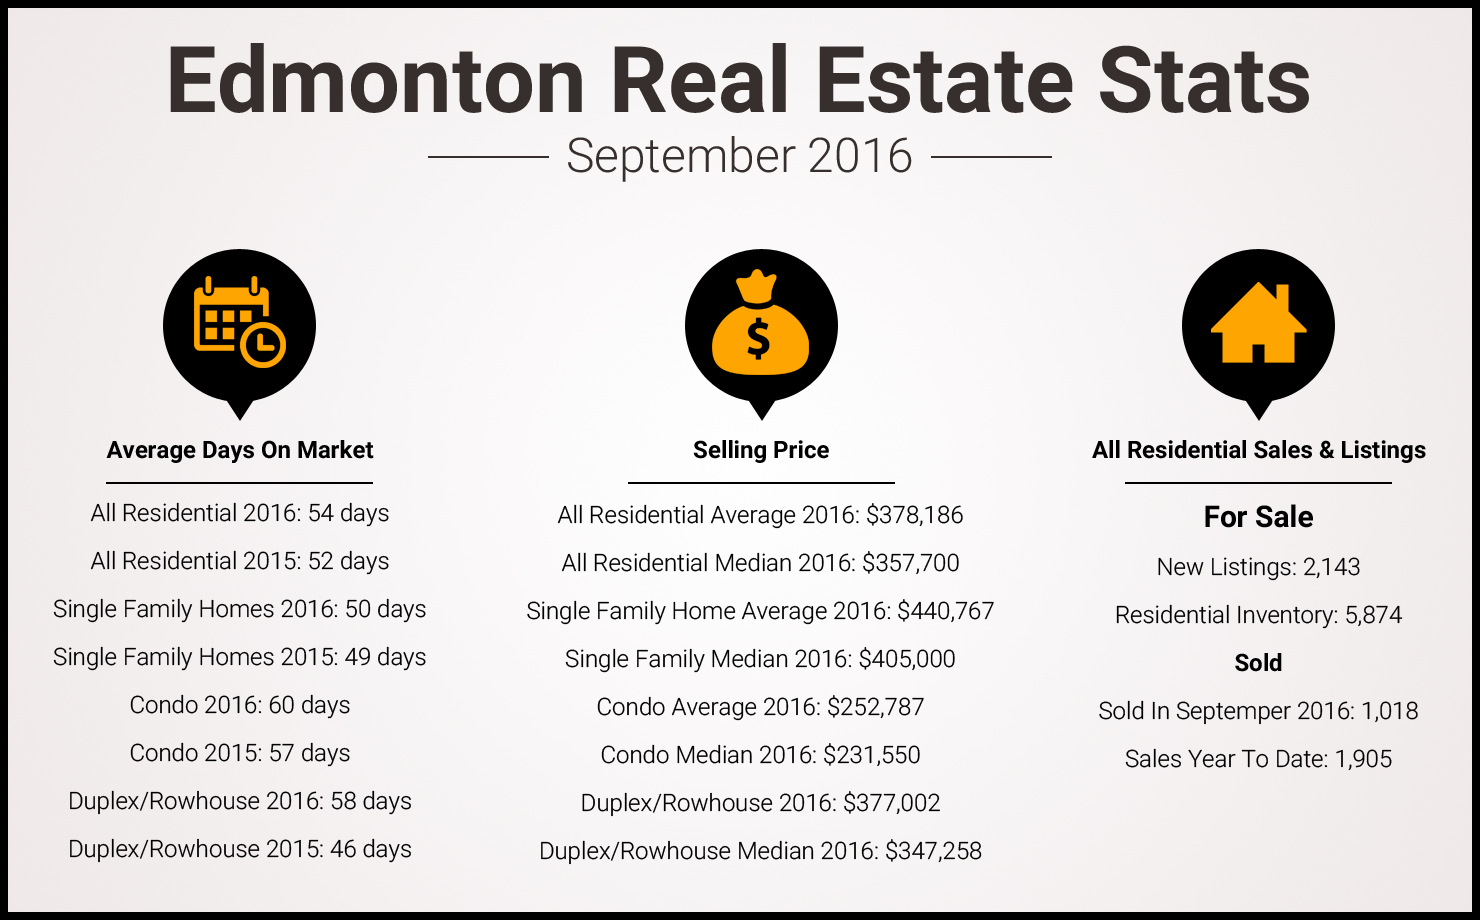 Edmonton Real Estate Stats - September 2016